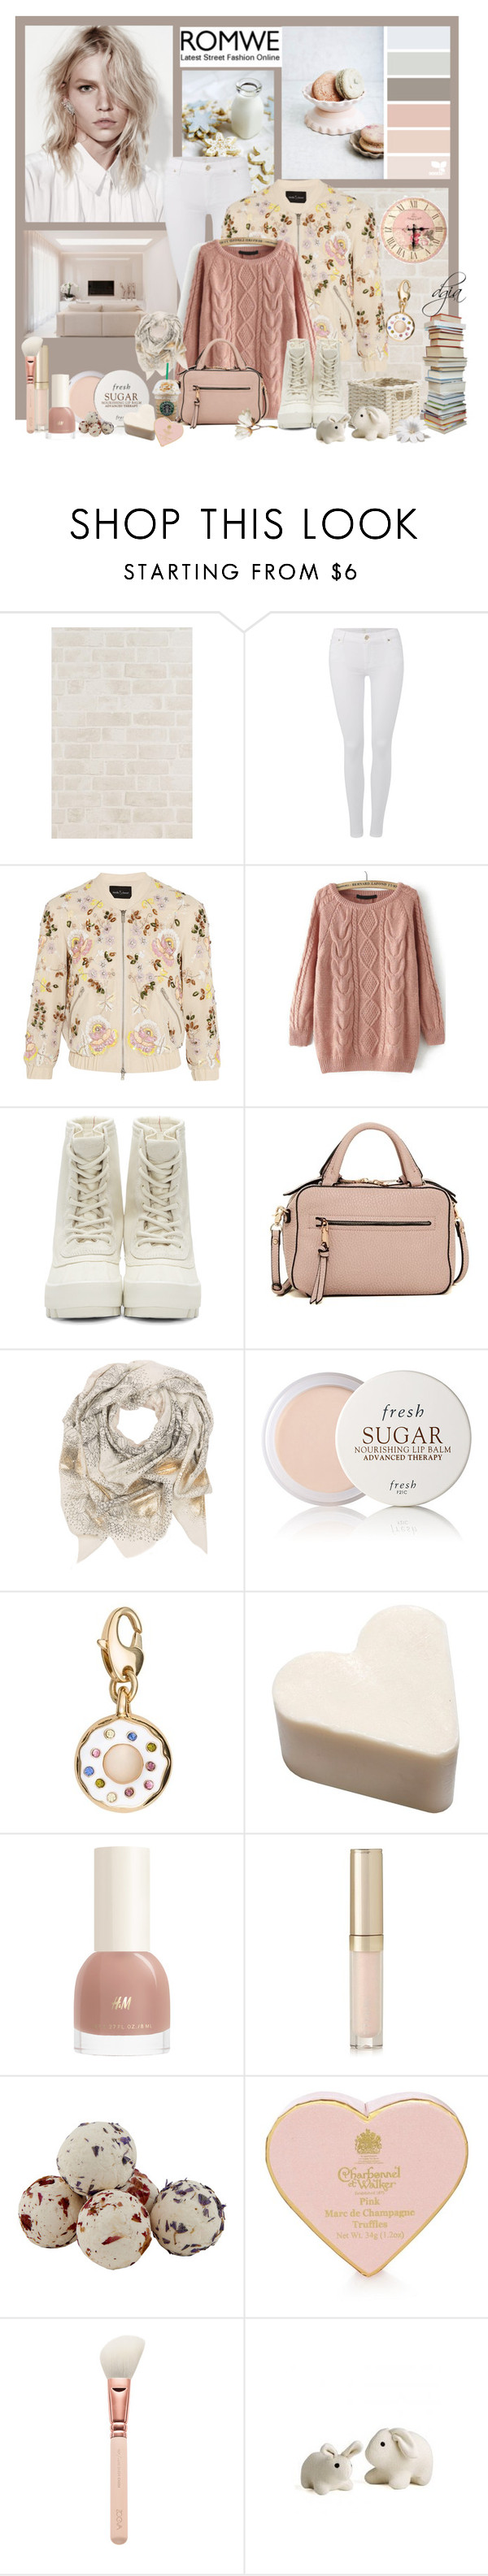 """ROMWE Loose Pink Sweater"" by dgia ❤ liked on Polyvore featuring 7 For All Mankind, Needle & Thread, adidas Originals, Urban Expressions, Sophie Darling, Fresh, Kate Spade, By Terry, Laura Ashley and women's clothing"